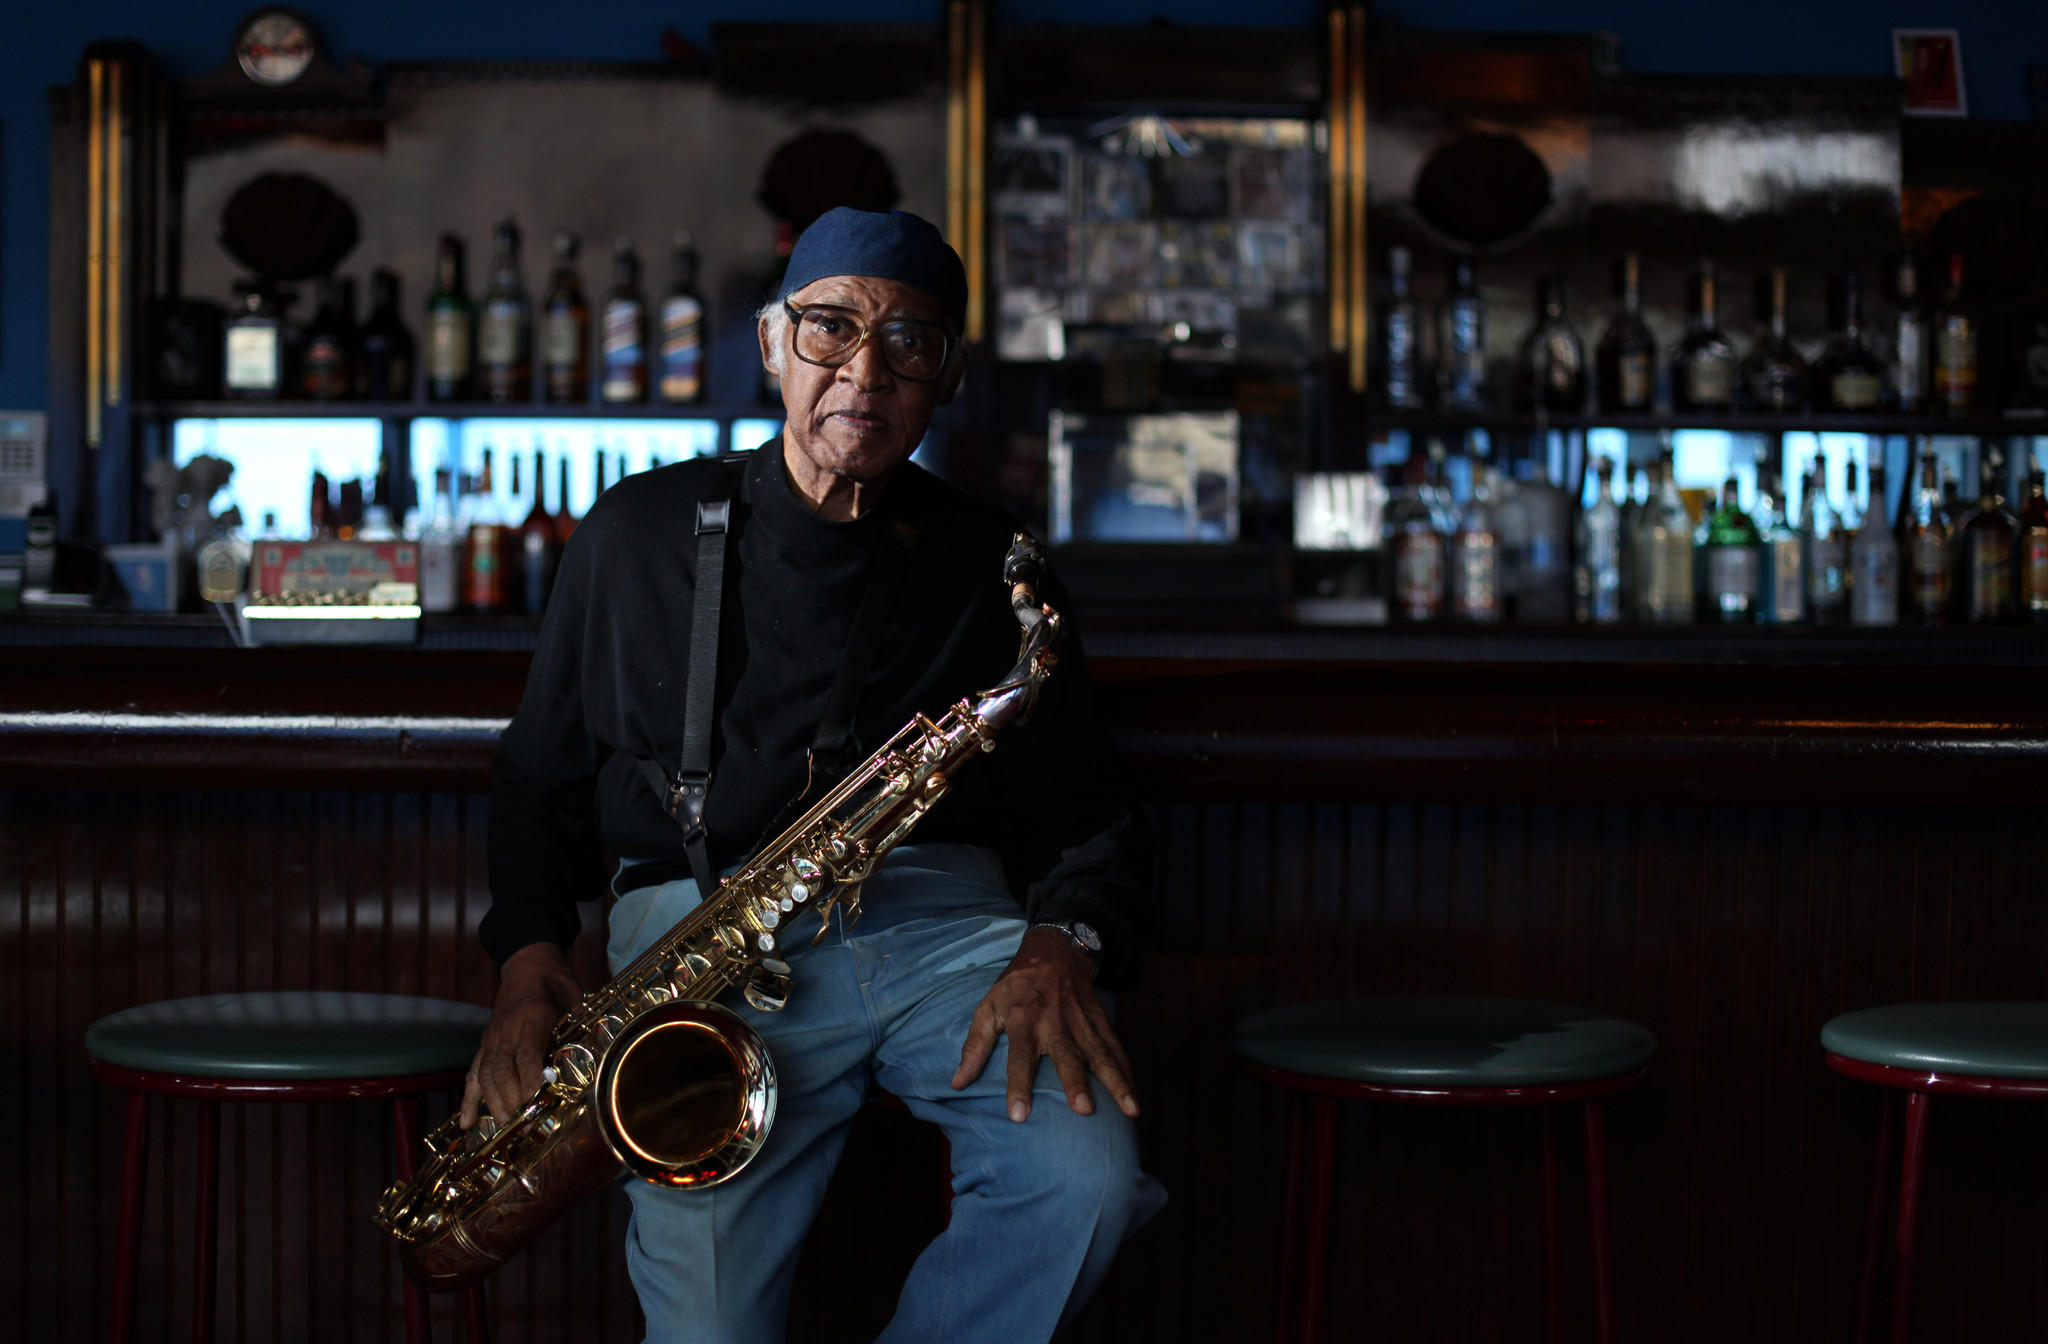 Legendary Chicago saxophonist Fred Anderson at the Velvet Lounge shortly before his 80th birthday.